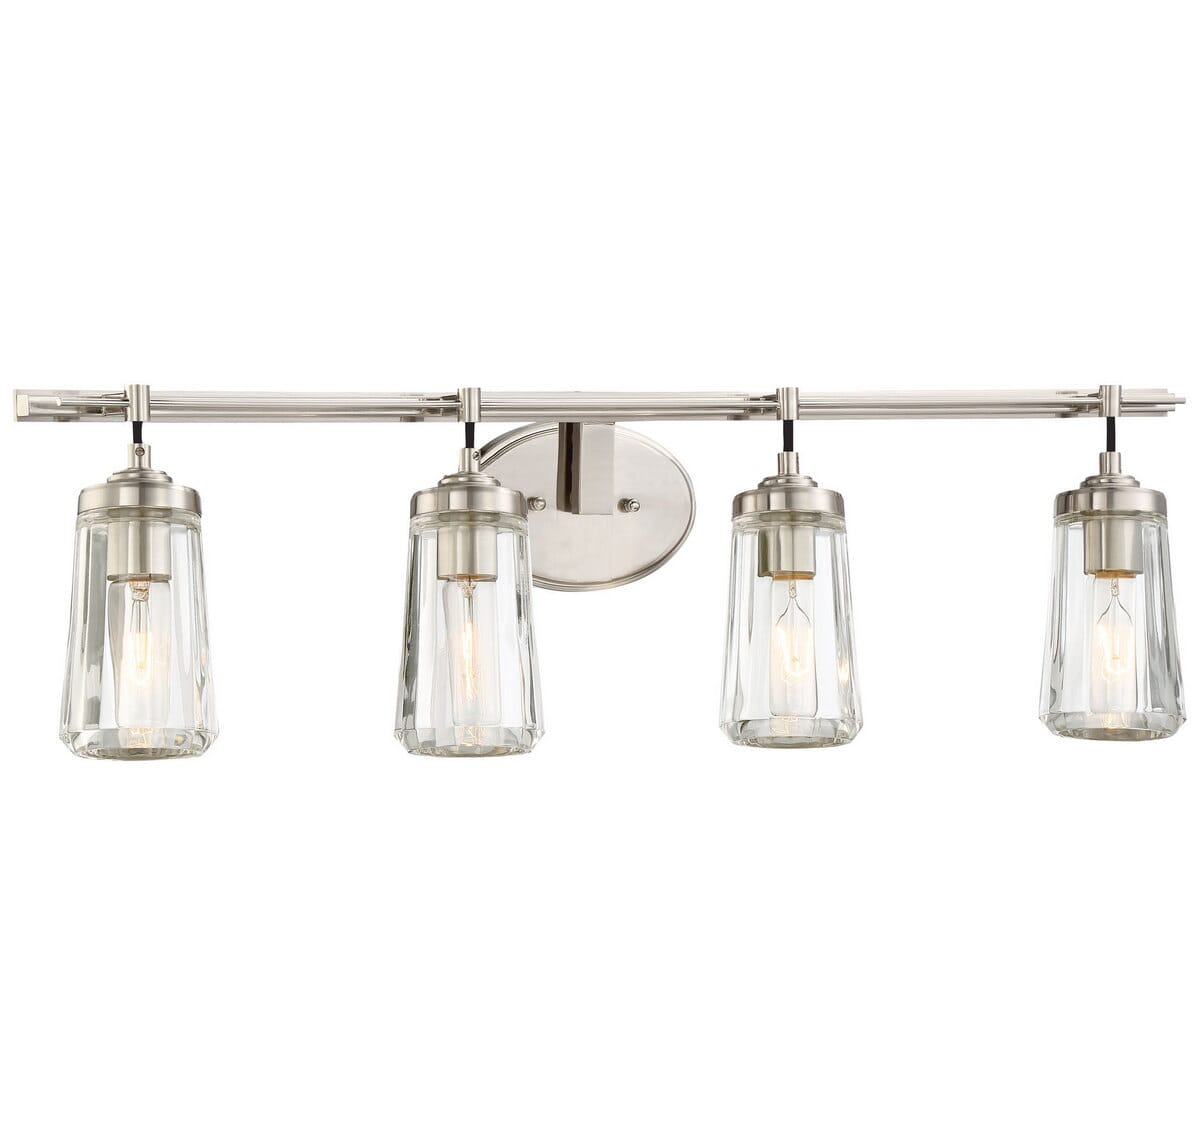 Minka Lavery Poleis 4 Light Bathroom Vanity Light In Brushed Nickel Lightsonline Com